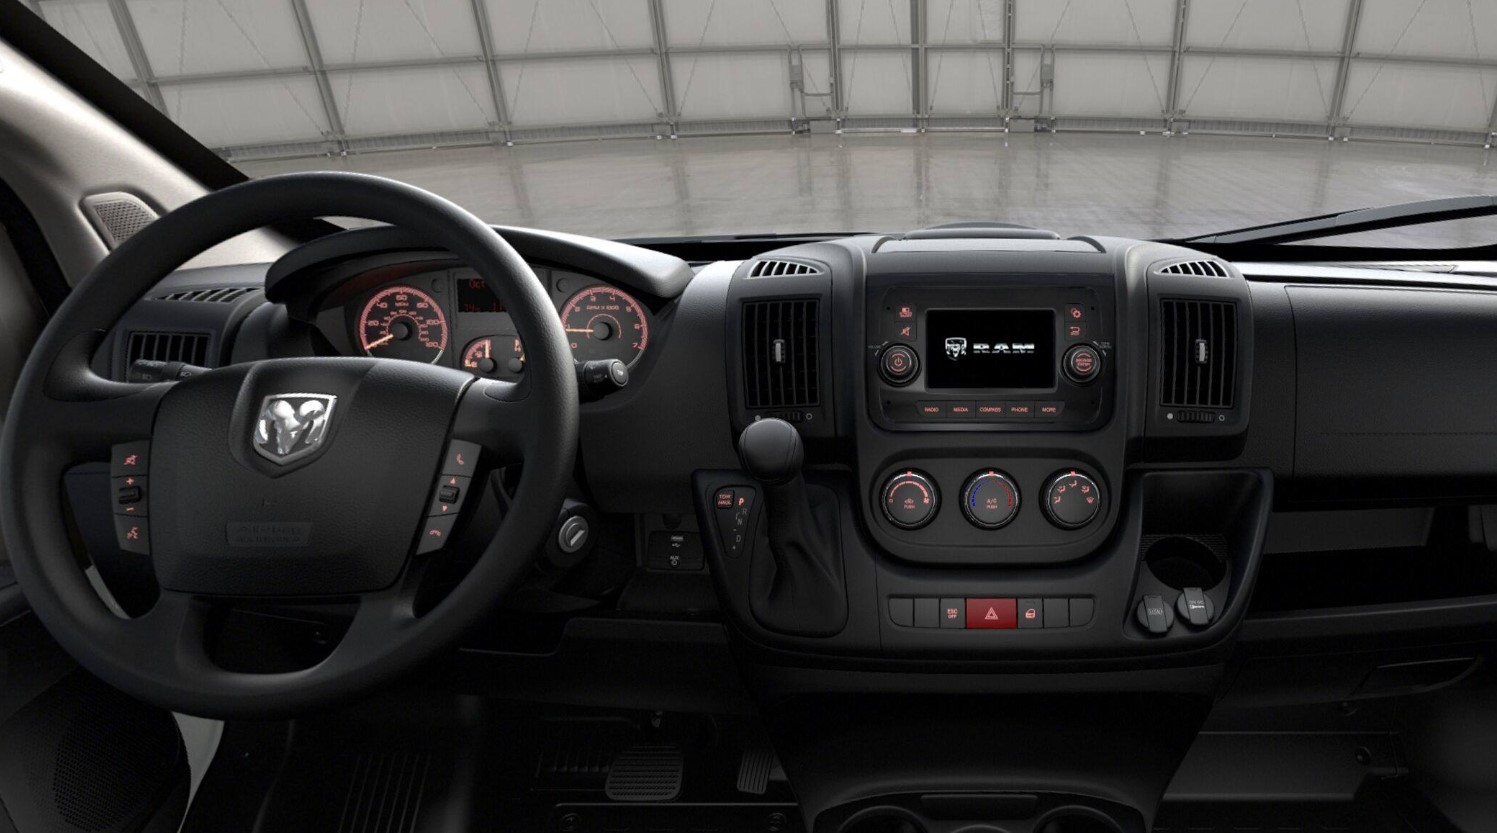 2019 Ram ProMaster 1500 Dashboard Interior